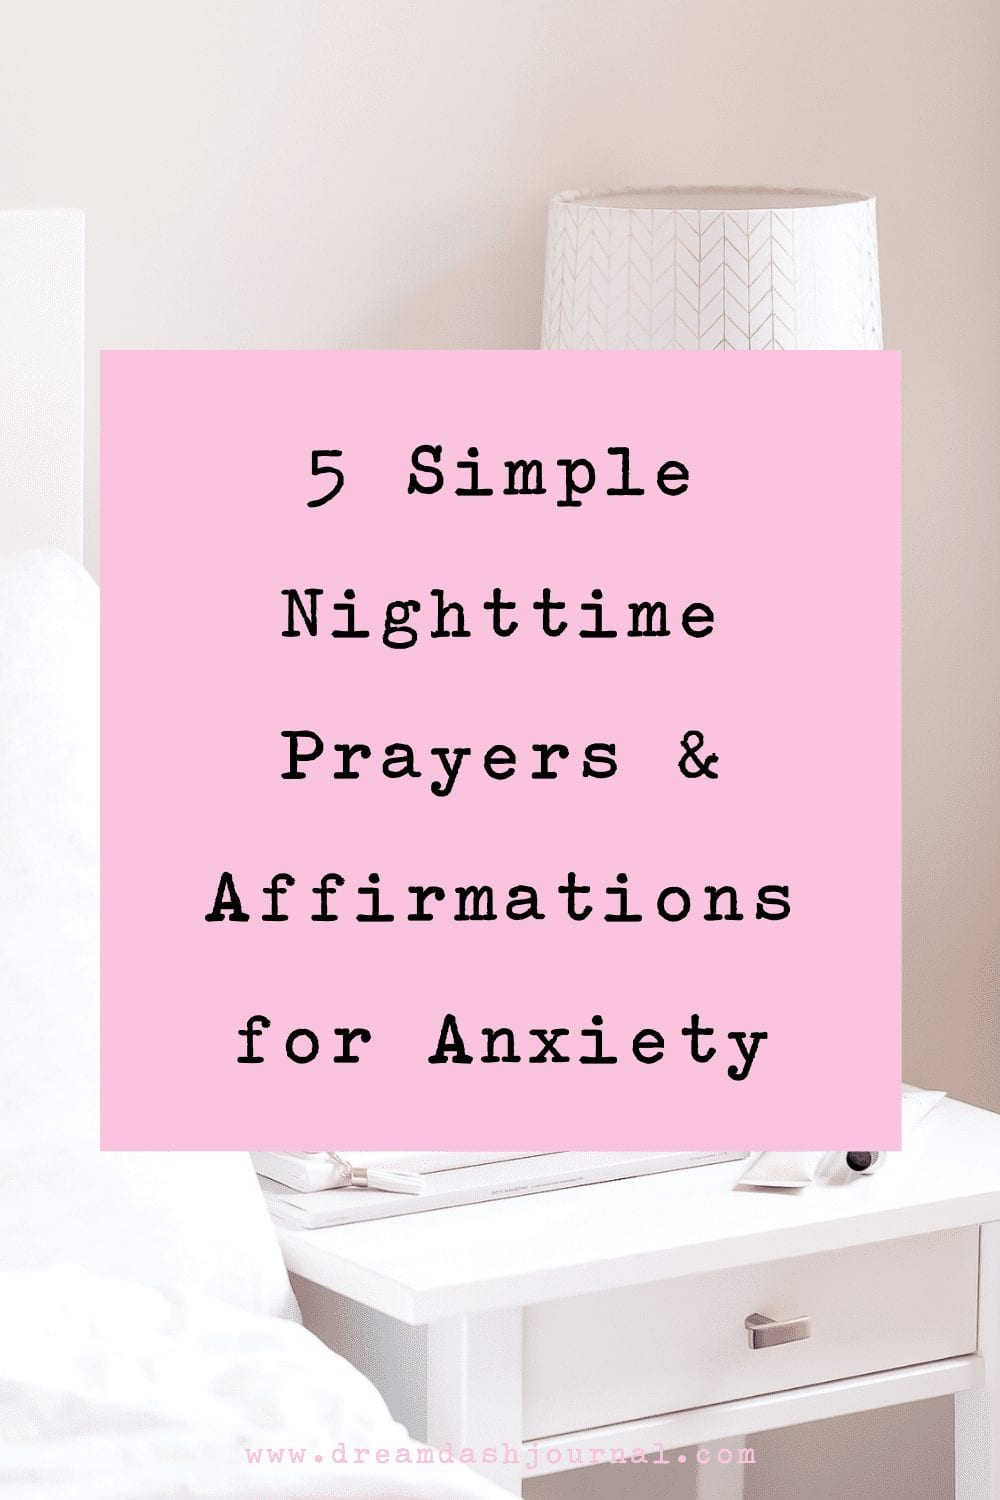 5 Simple Nighttime Prayers & Affirmations for Anxiety